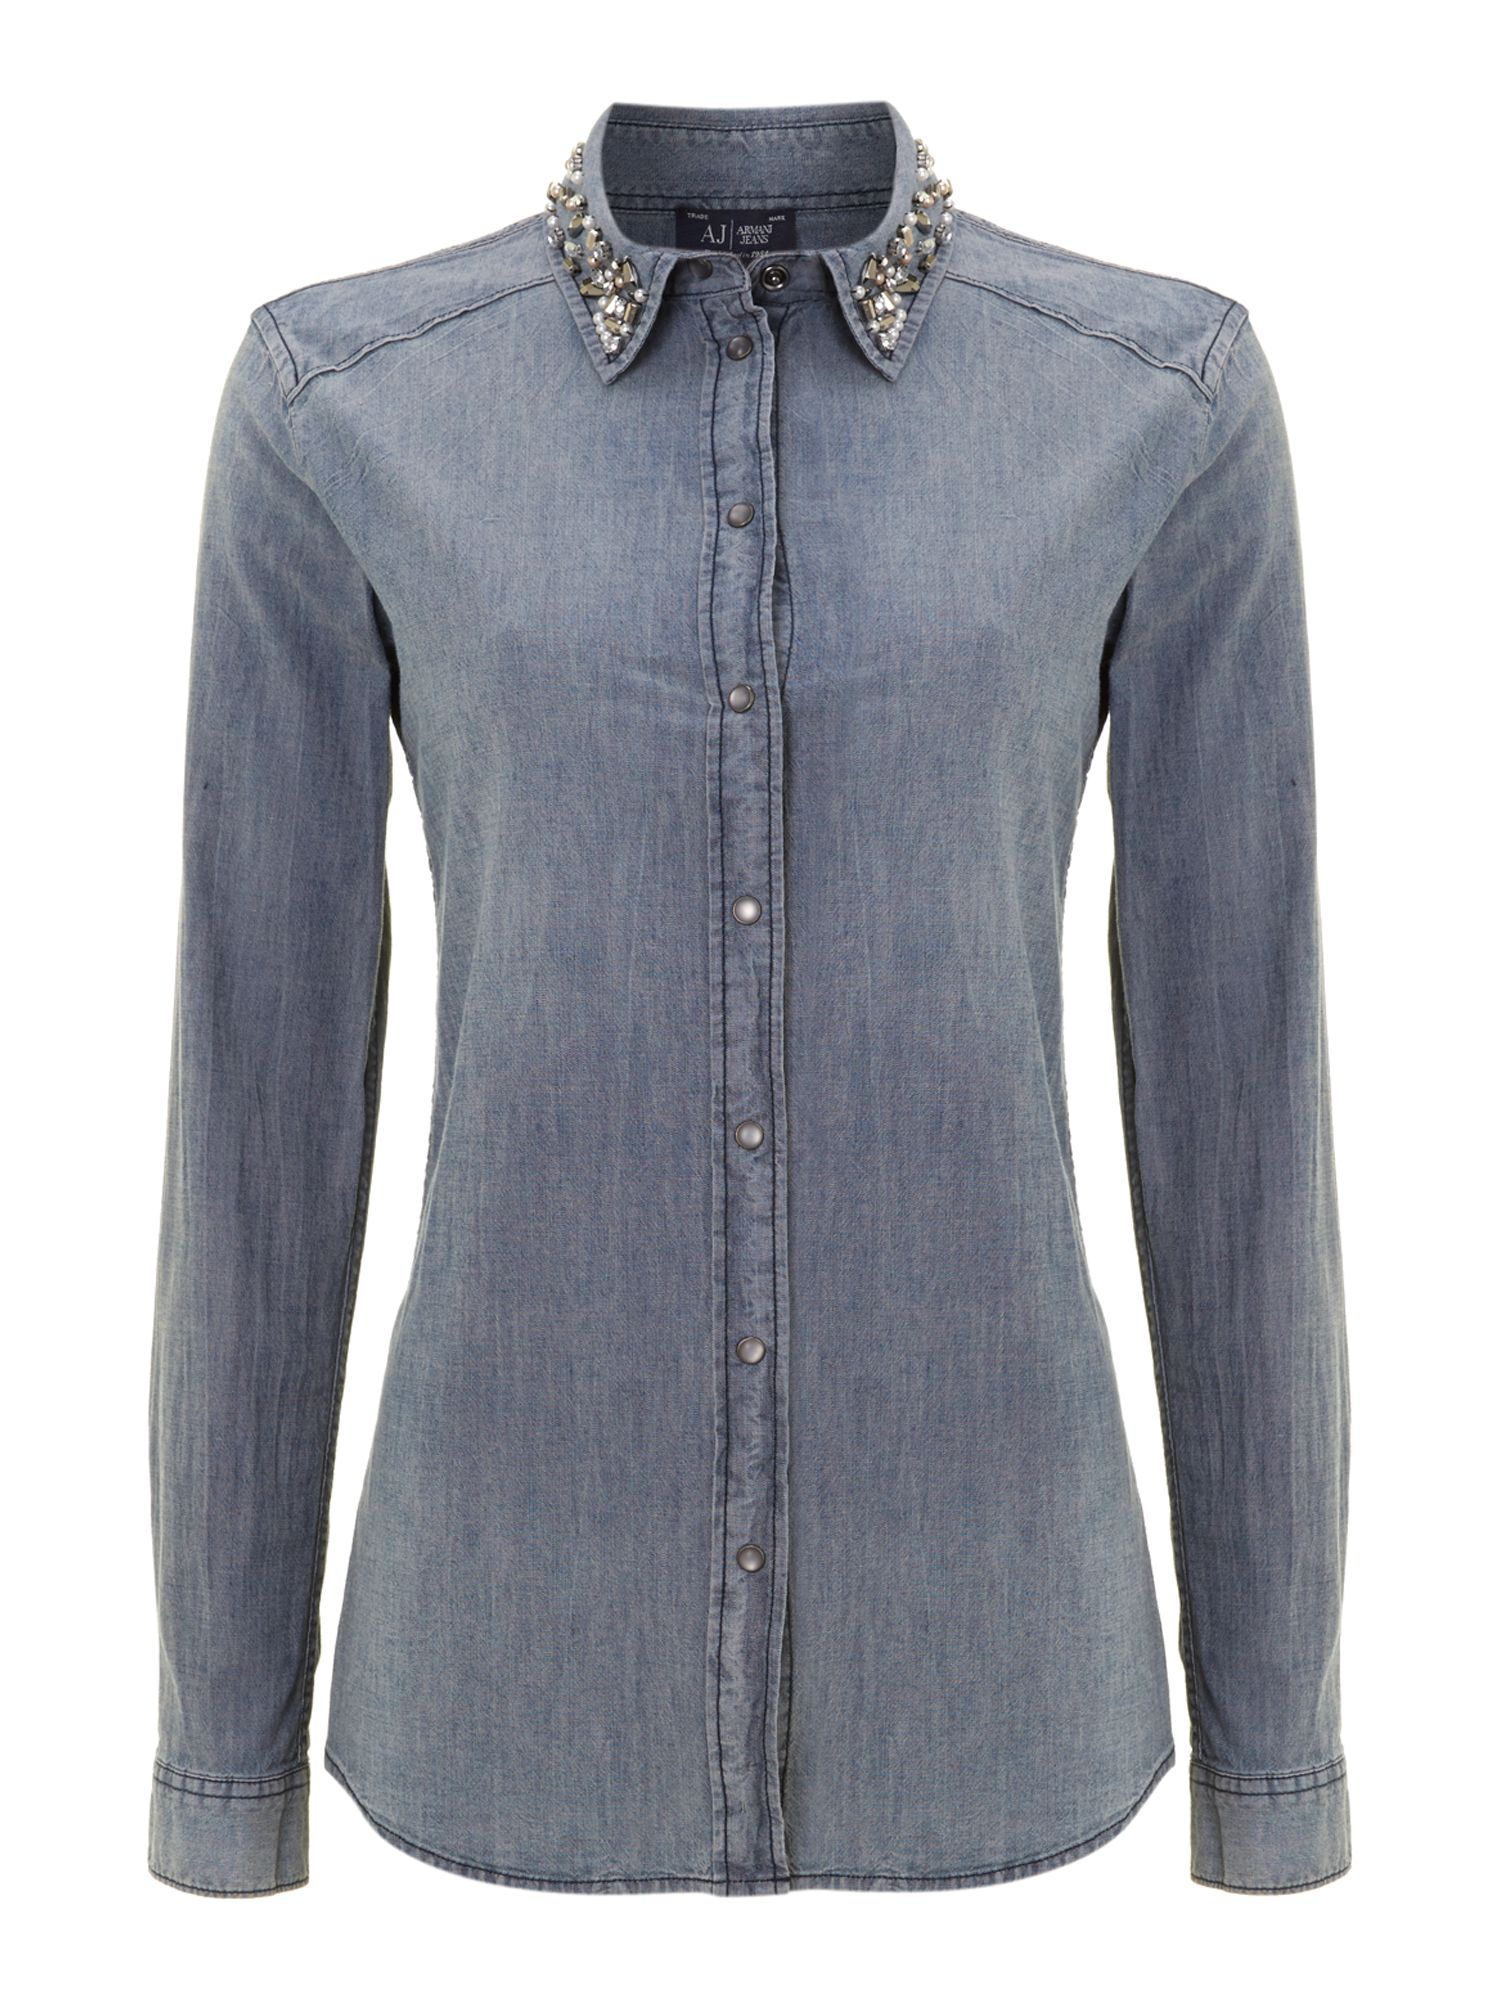 Denim shirt with embellished collar